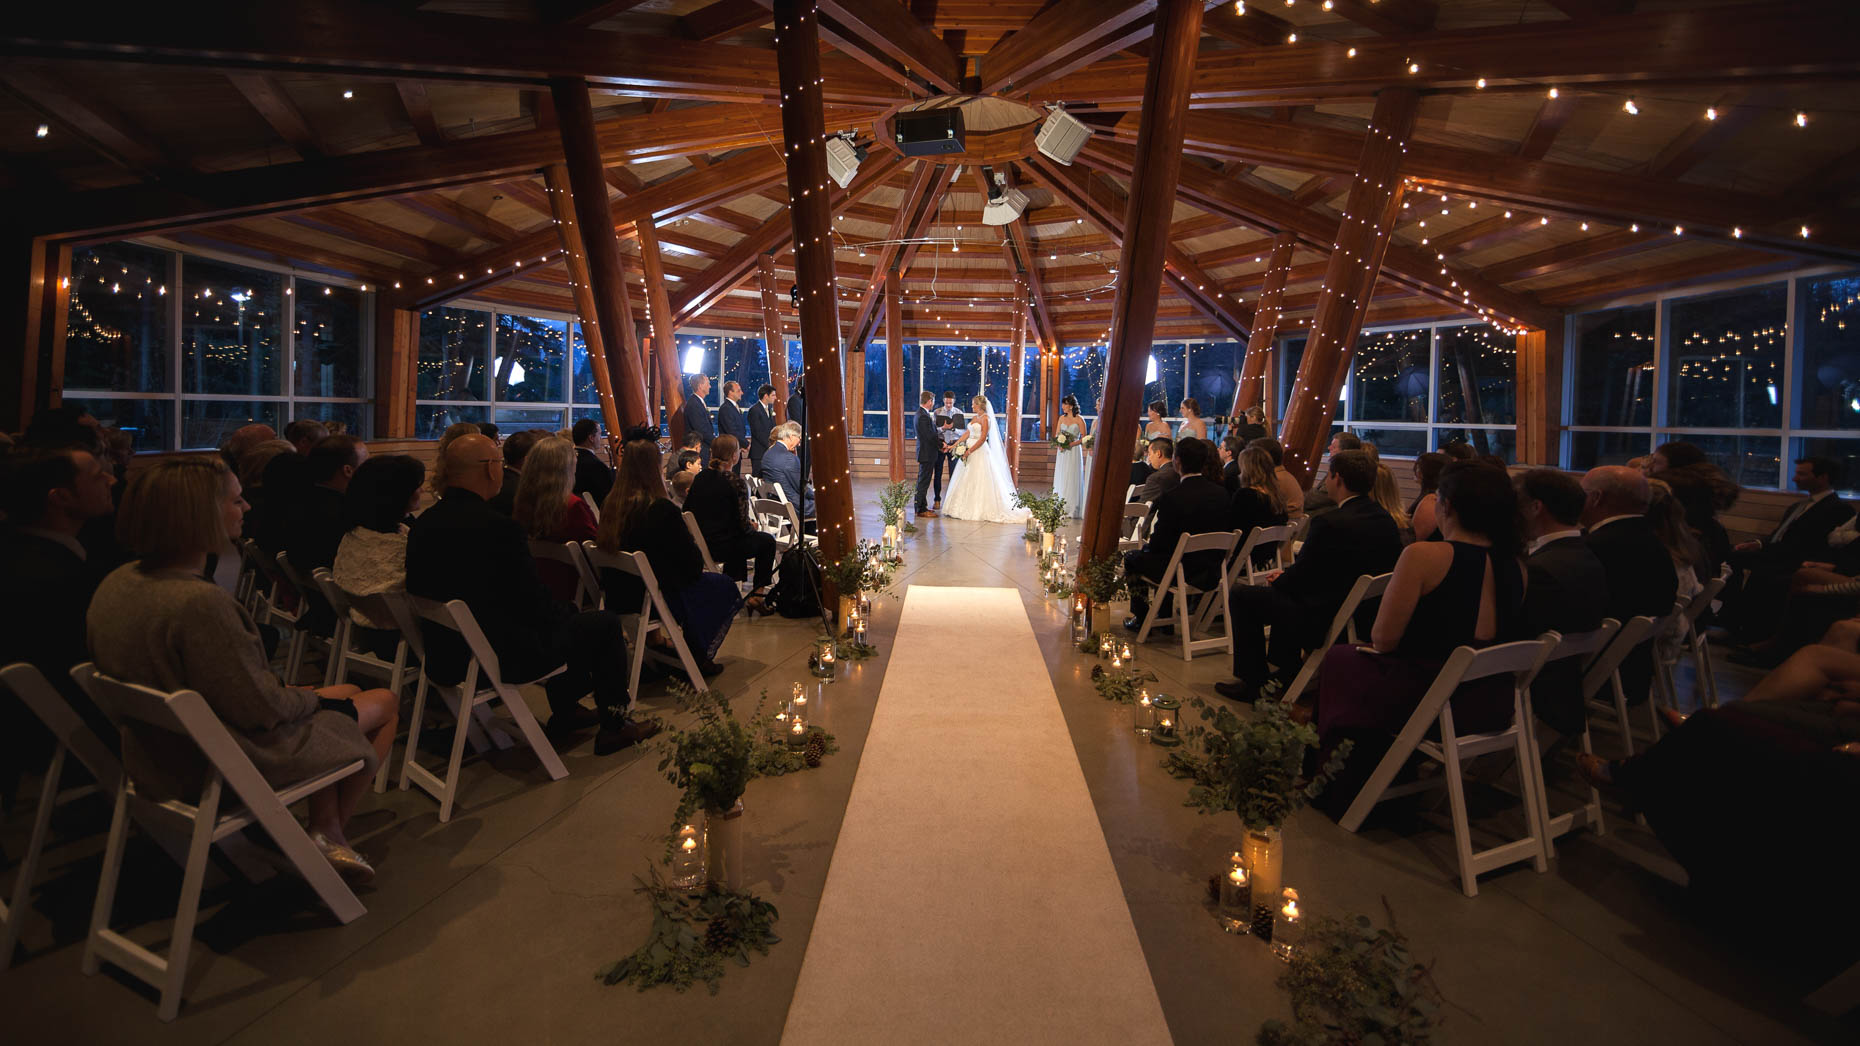 SLCC wedding ceremony venue in Whistler BC shown by photographer Robin O